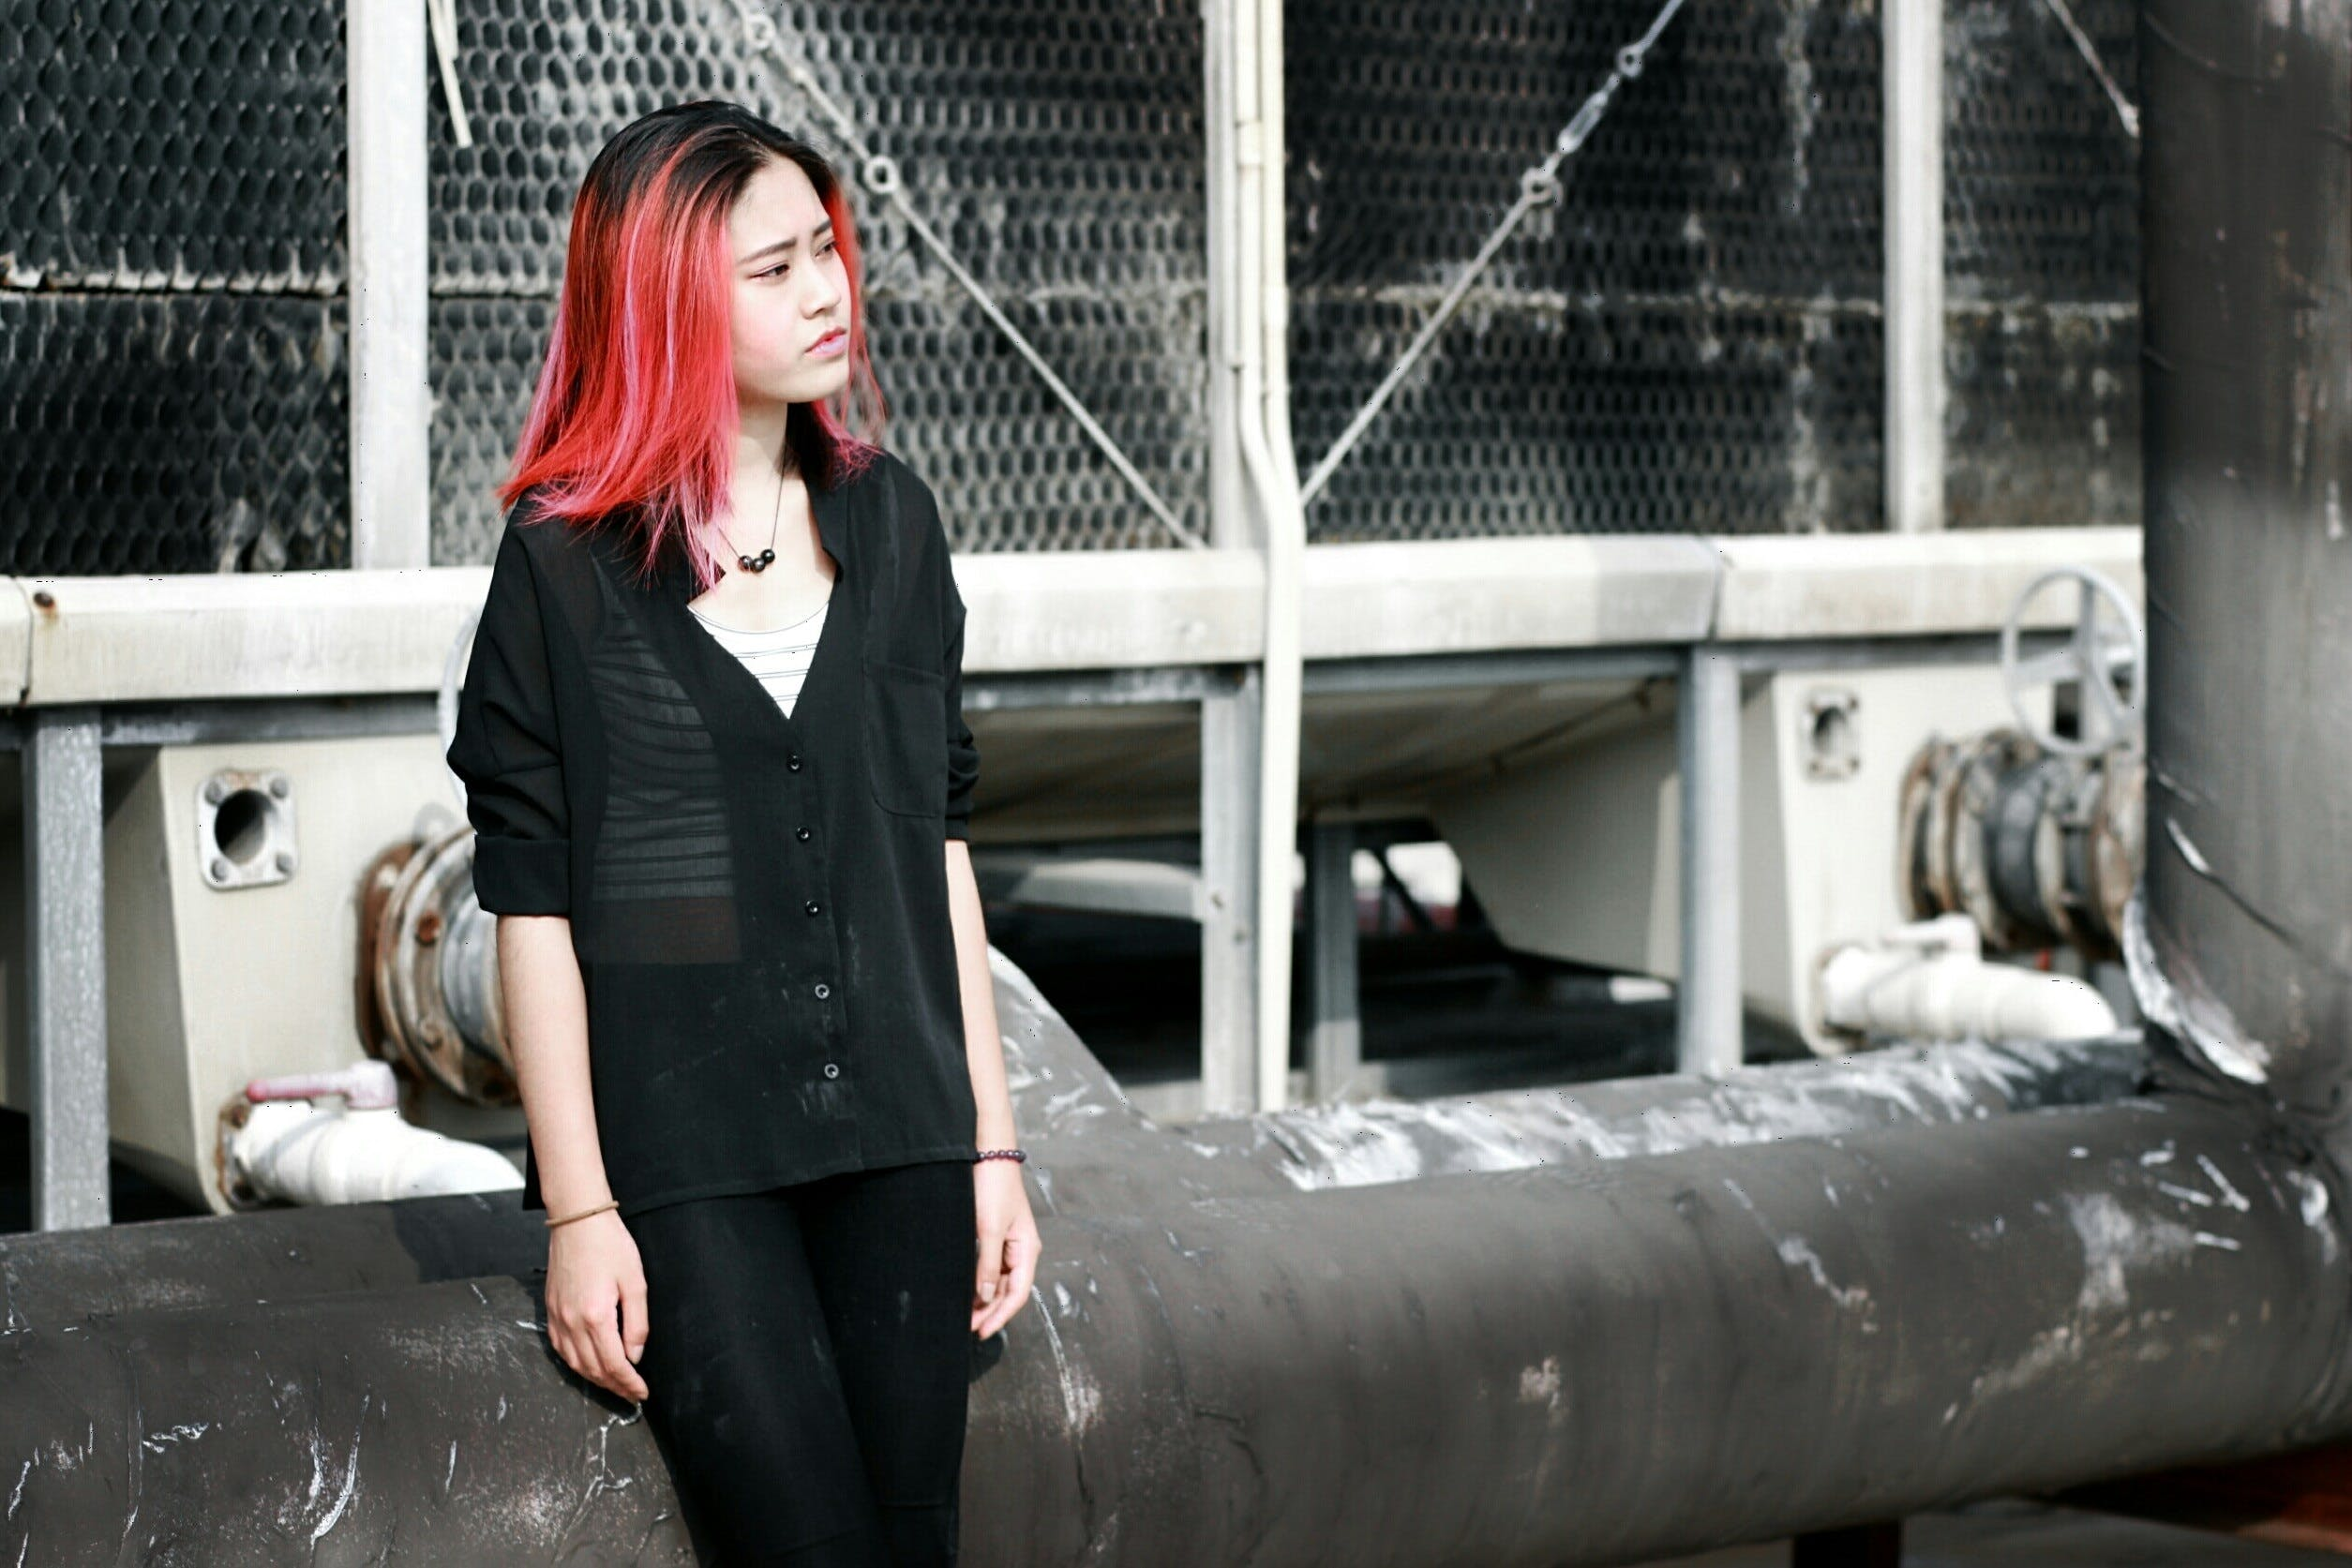 Red-haired Woman Wearing Black Top Standing in Front of White Building